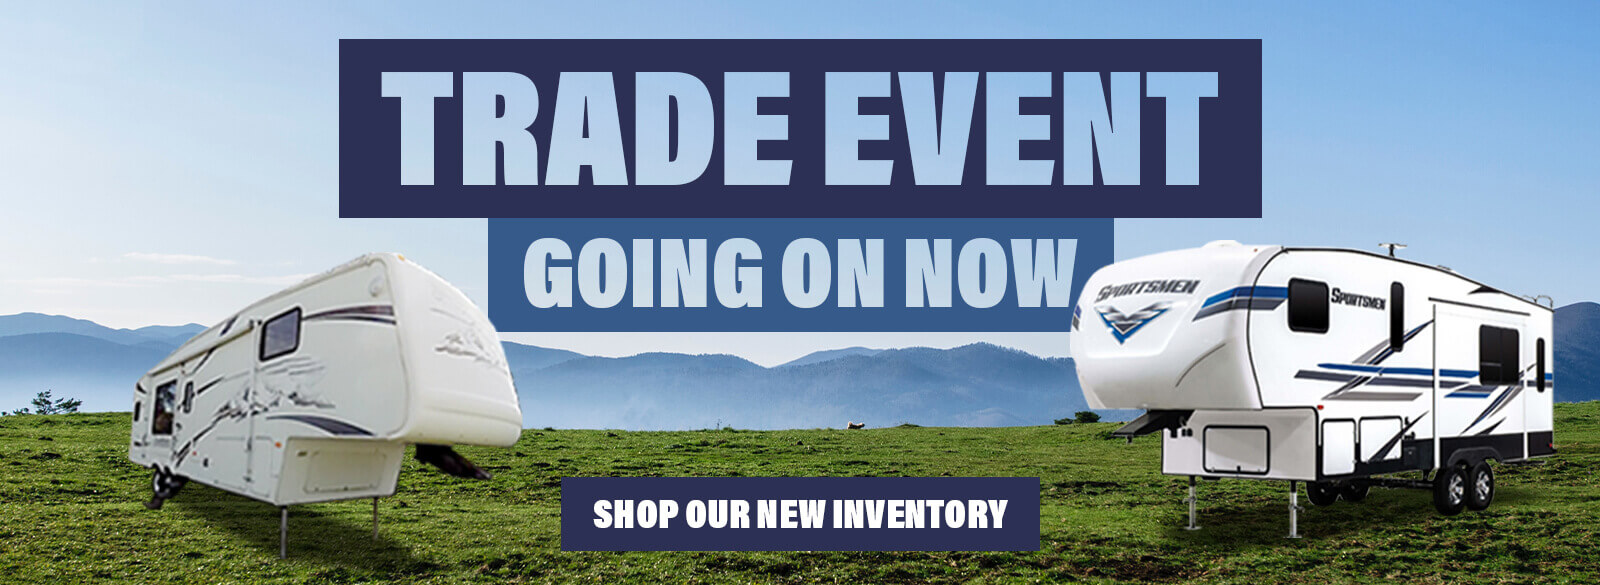 TriAm_TradeEvent_Banner_061120.jpg